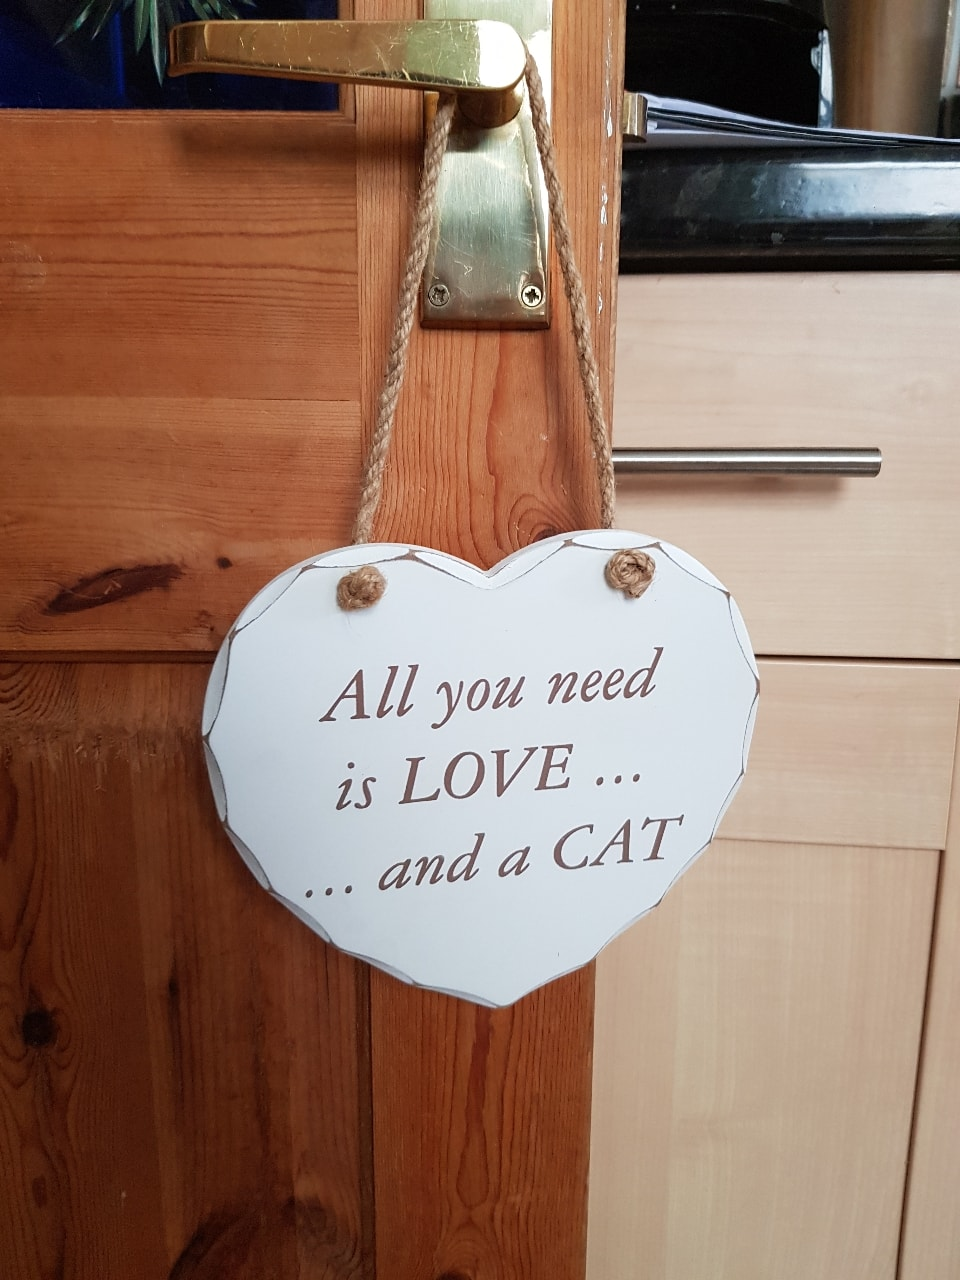 Heart shaped wooden sign